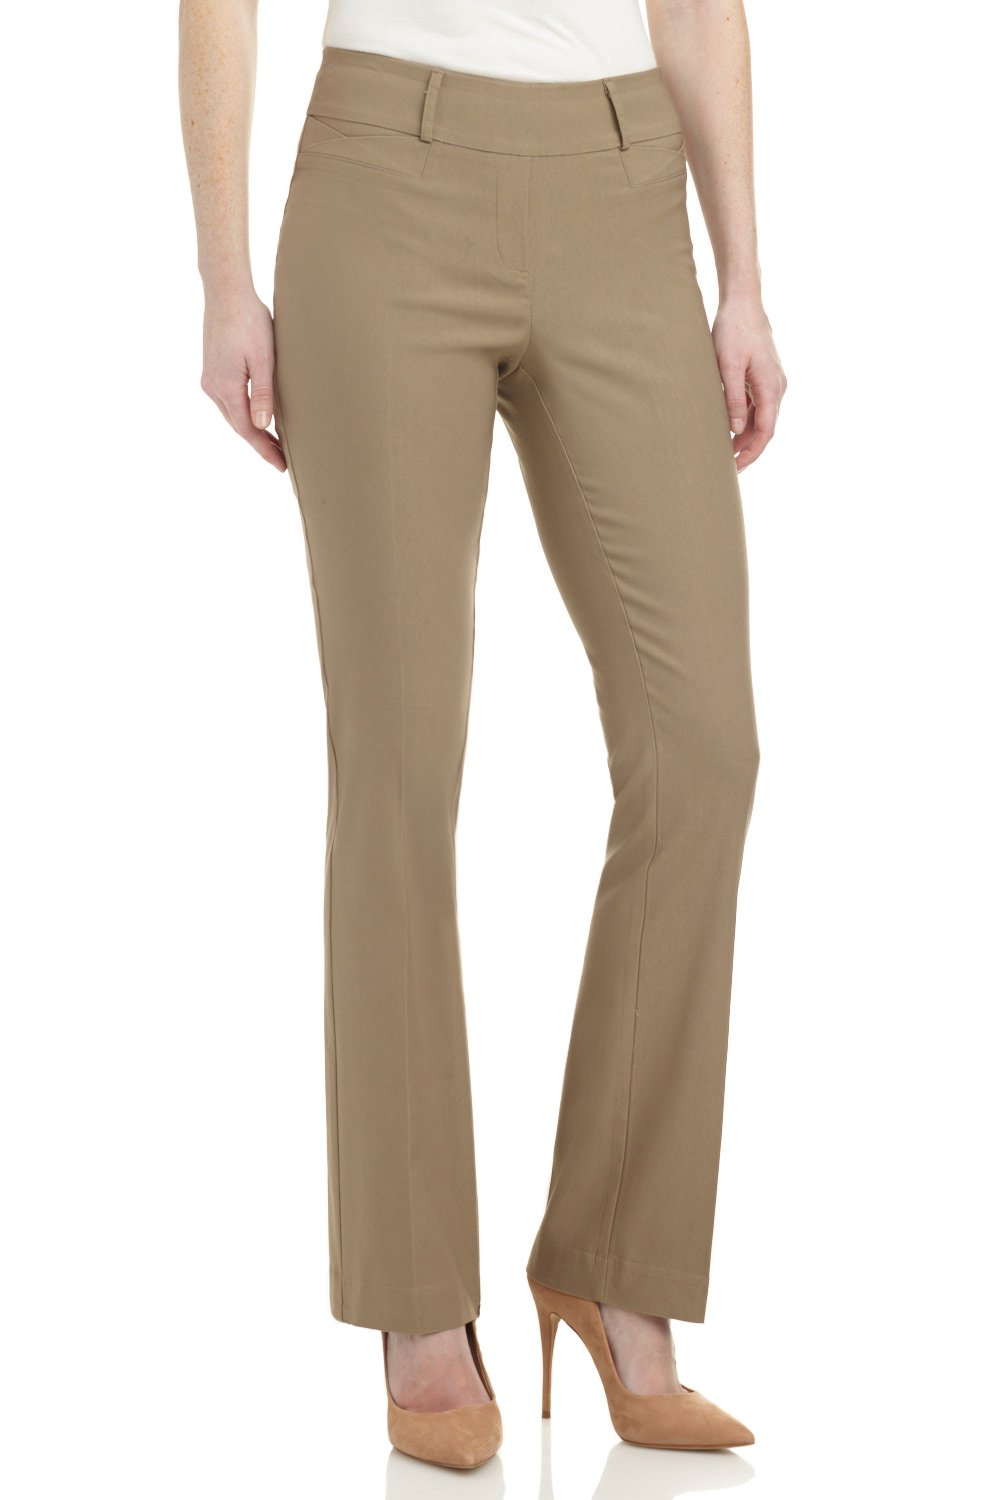 Rekucci Women's ''Ease In To Comfort Fit'' Barely Bootcut Stretch Pants (10,Oatmeal)